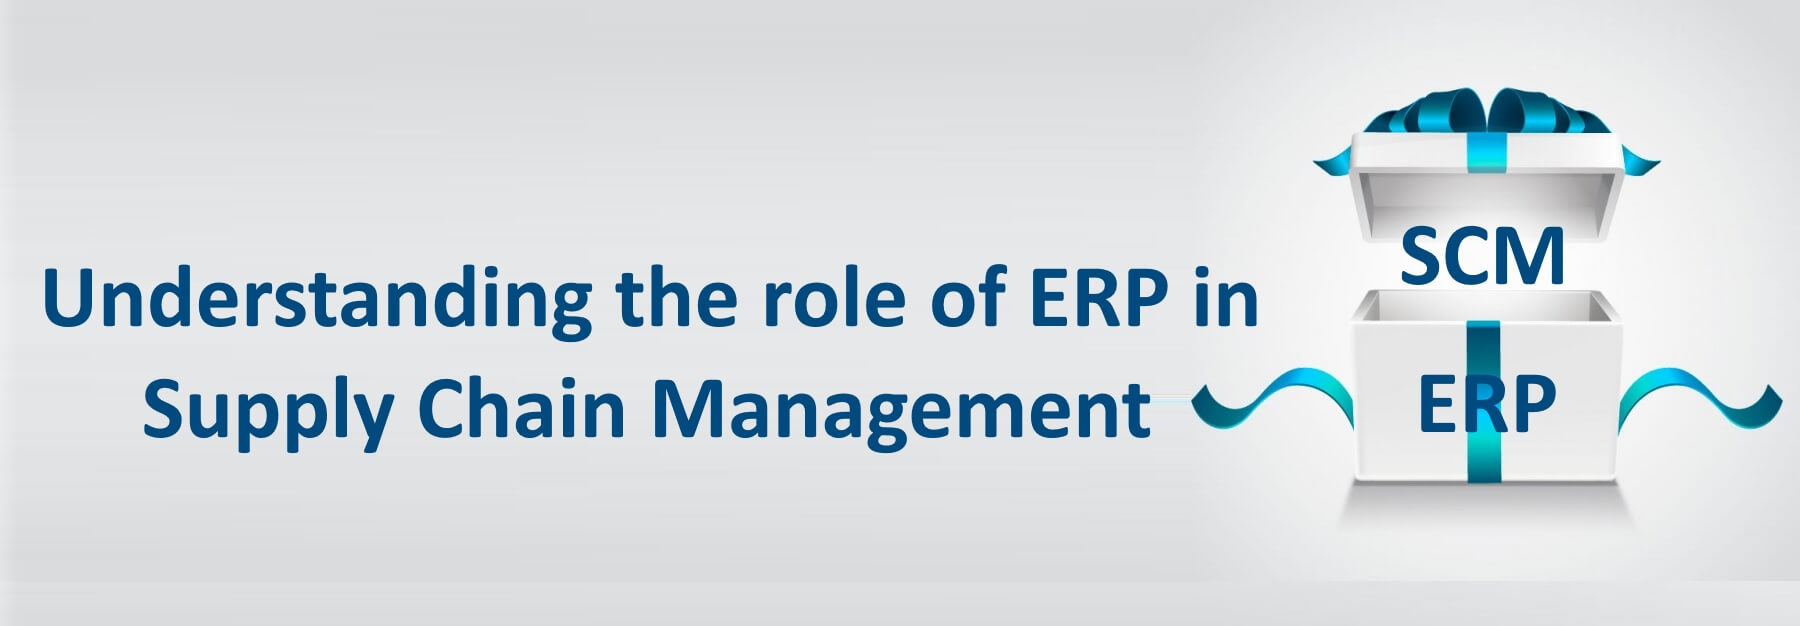 ERP in Supply Chain Management